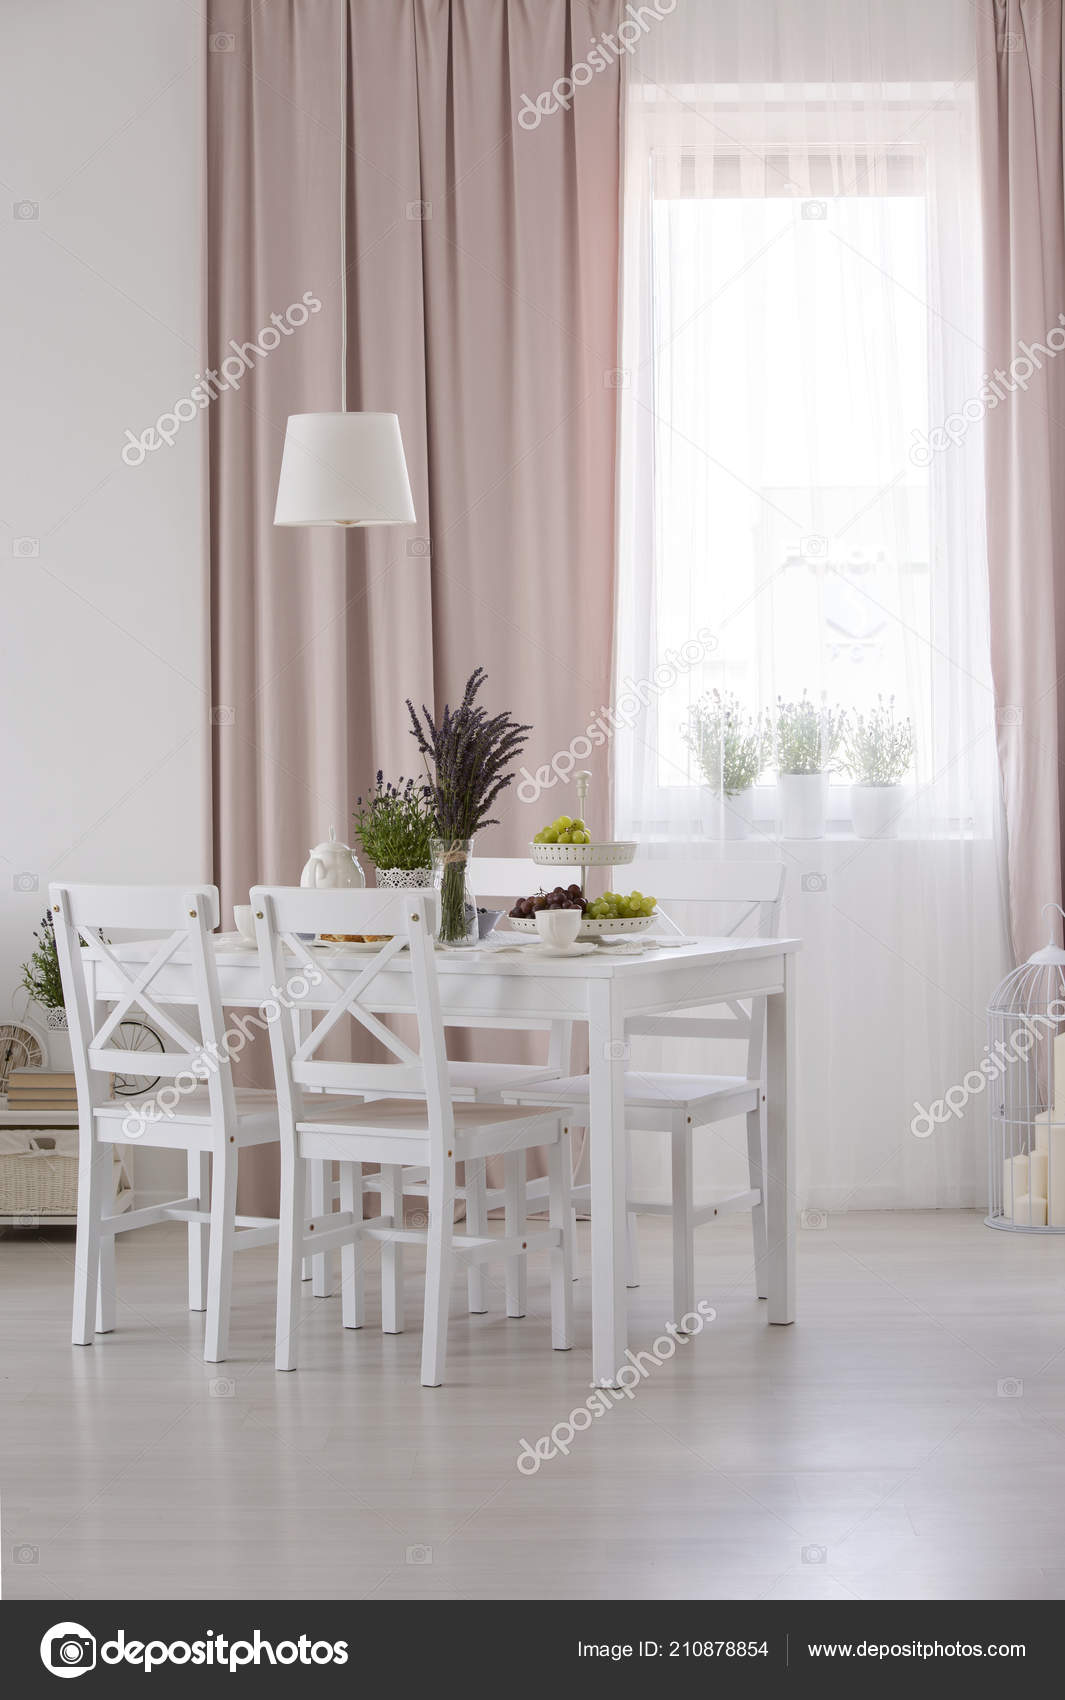 Real Photo White Dining Room Interior Window Curtains Table ...